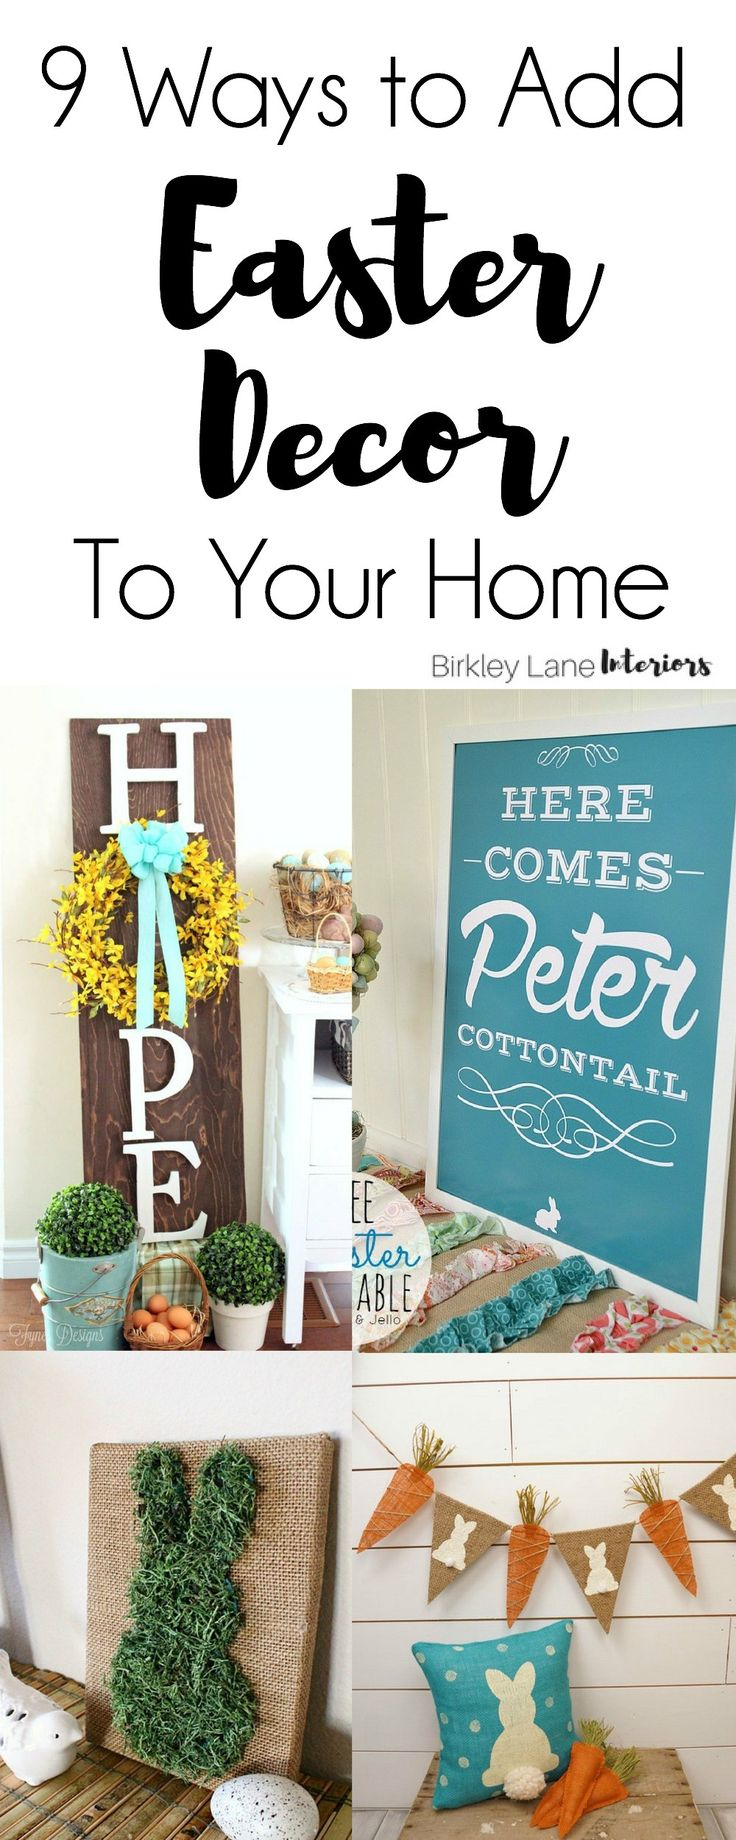 Religious easter yard decorations - 9 Ways To Add Easter Decor To Your Home